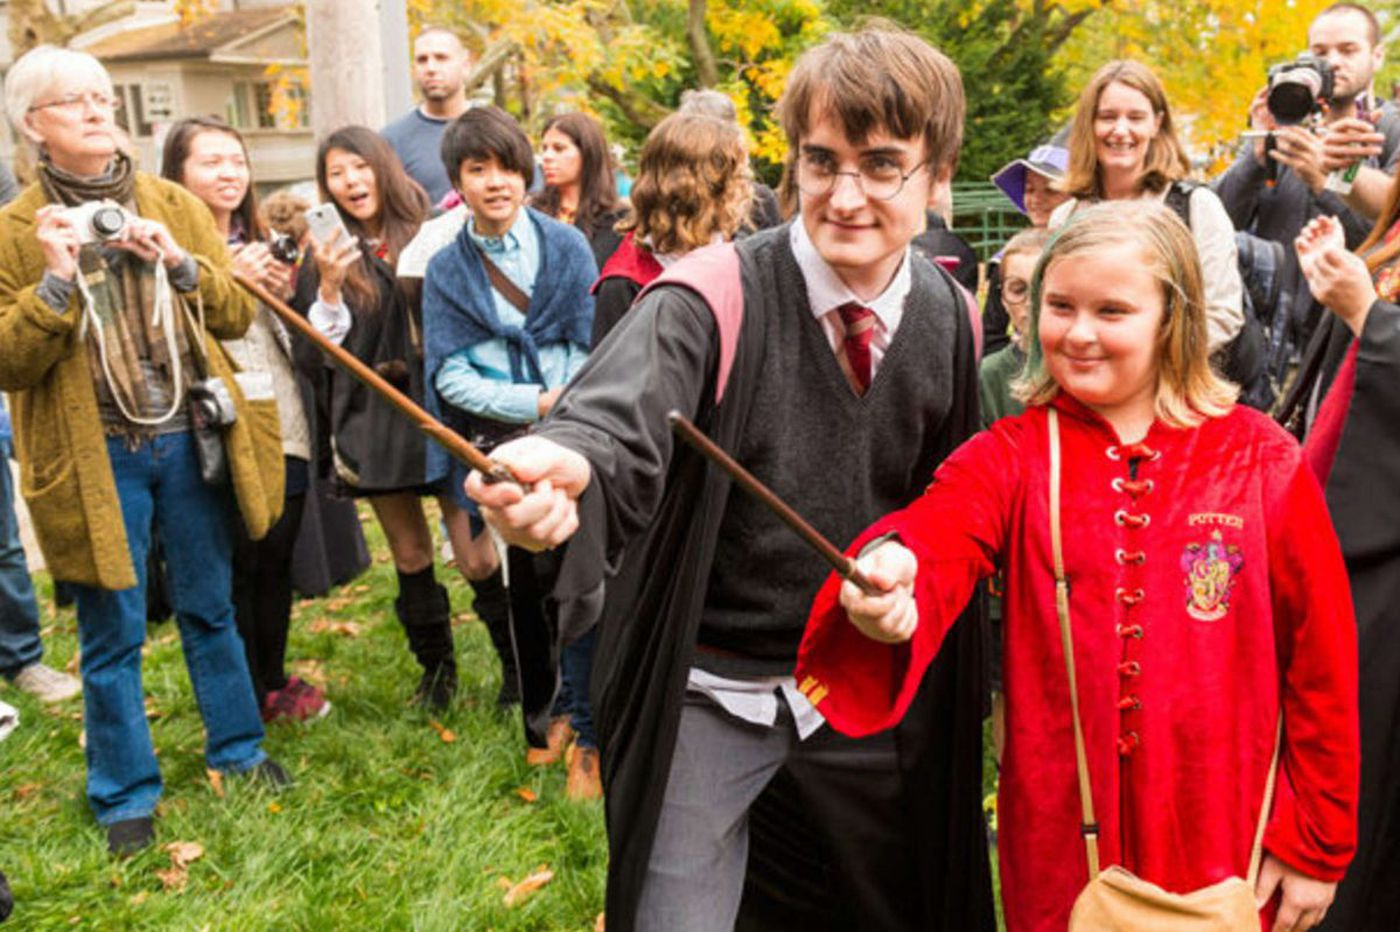 A muggles' guide to the Harry Potter Festival